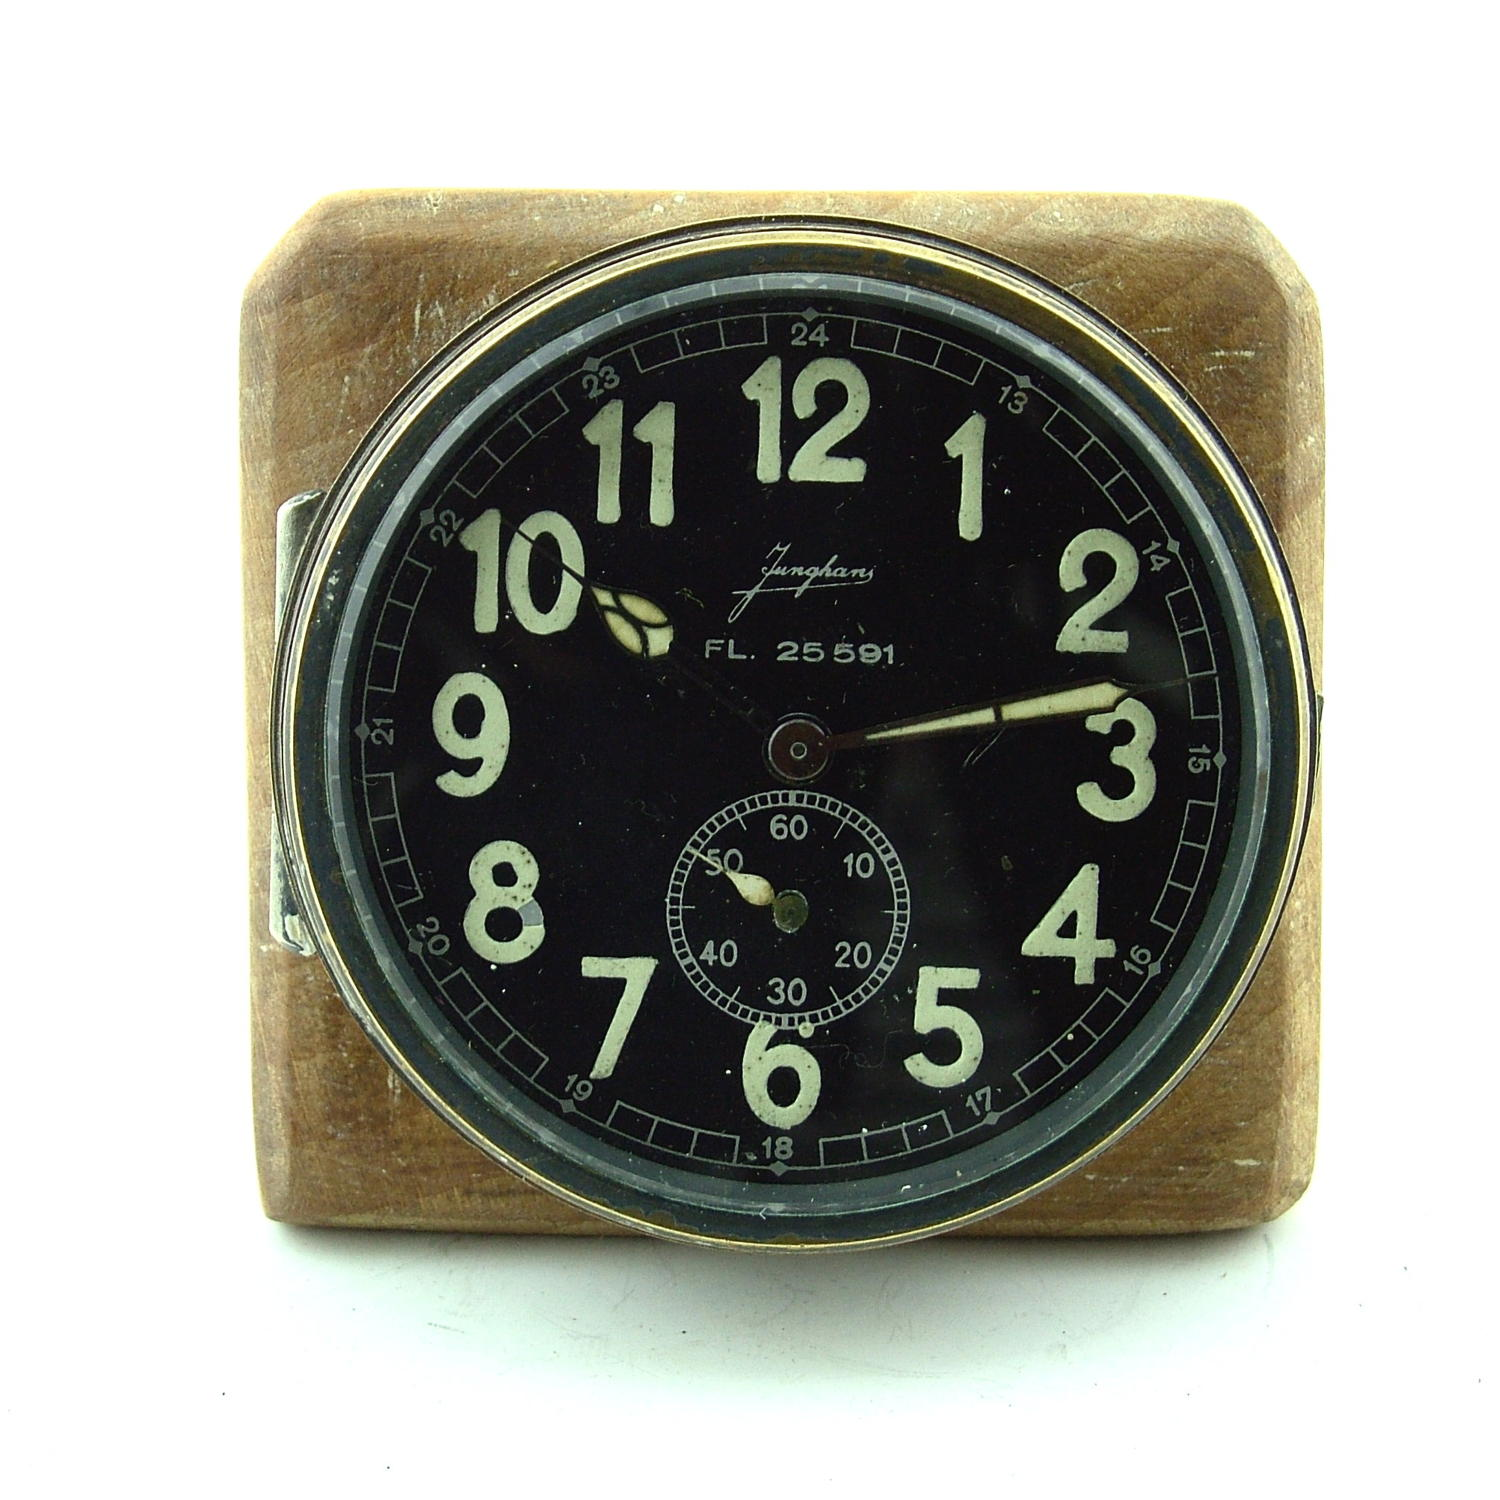 Luftwaffe aircraft cockpit clock